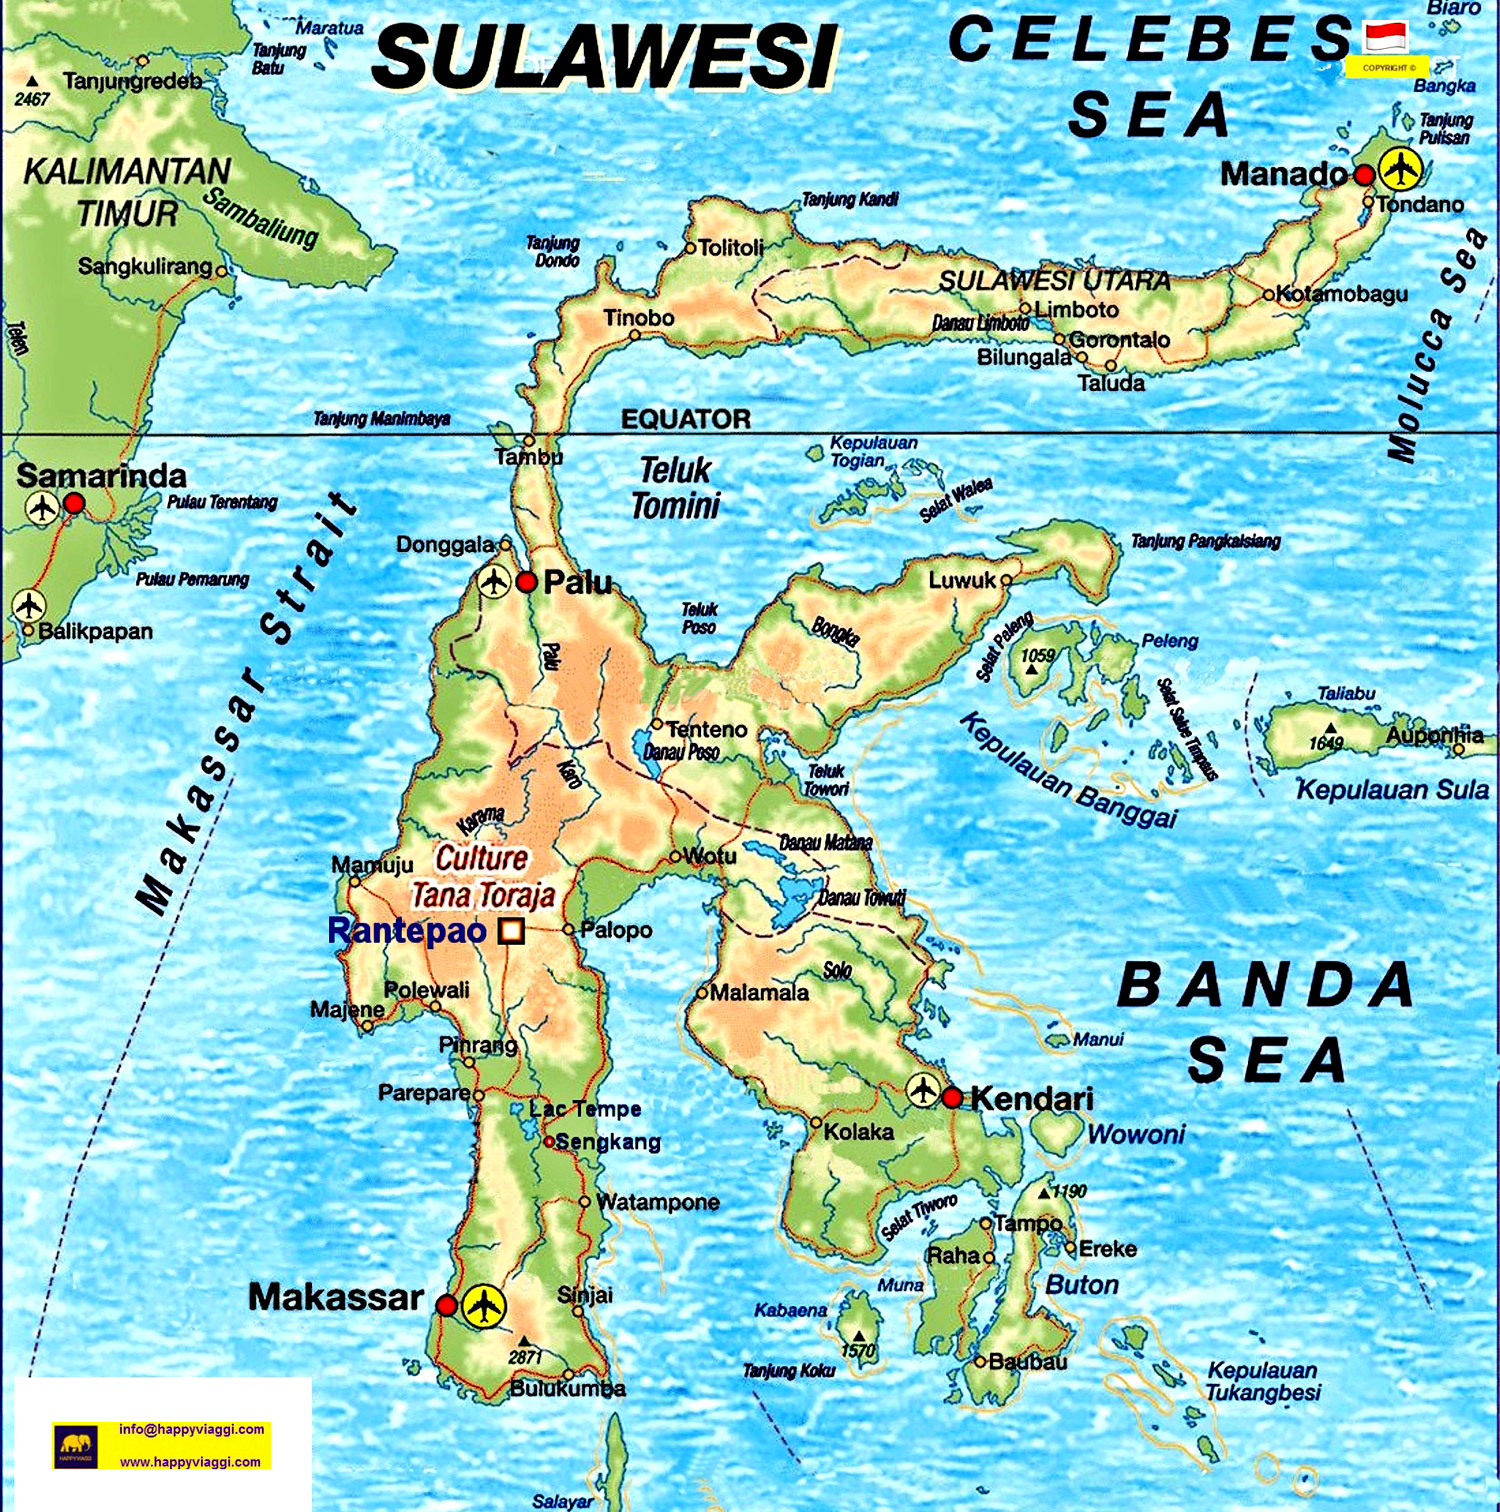 Cartina Geografica Dell Indonesia.Carta Geografica Isola Di Sulawesi